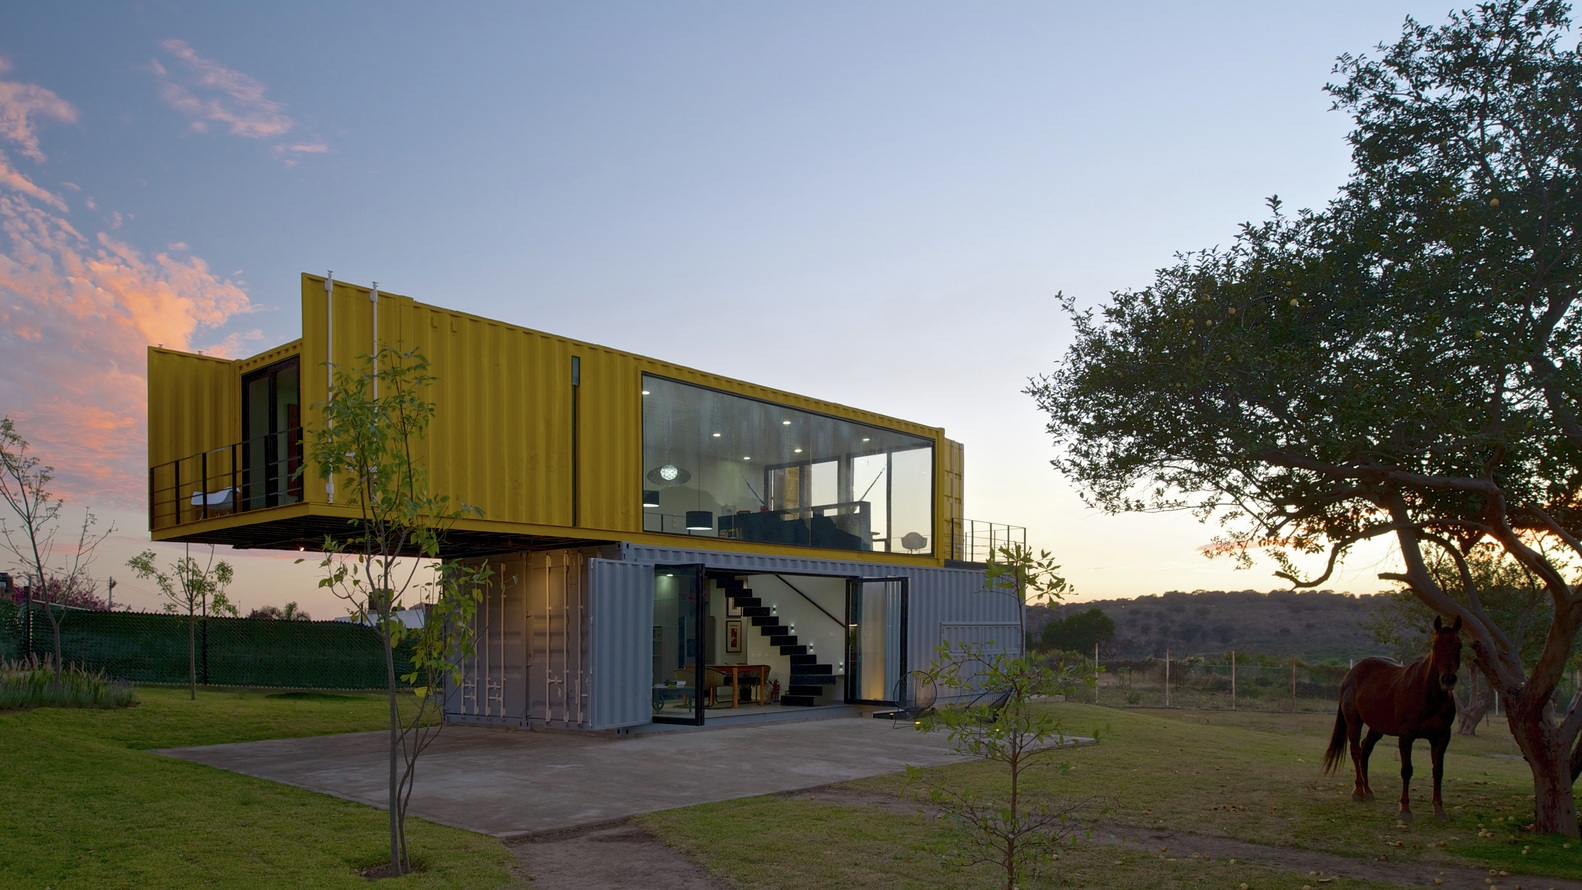 Shipping Container Homes: Huiini Container House in Mexico by S+ diseño